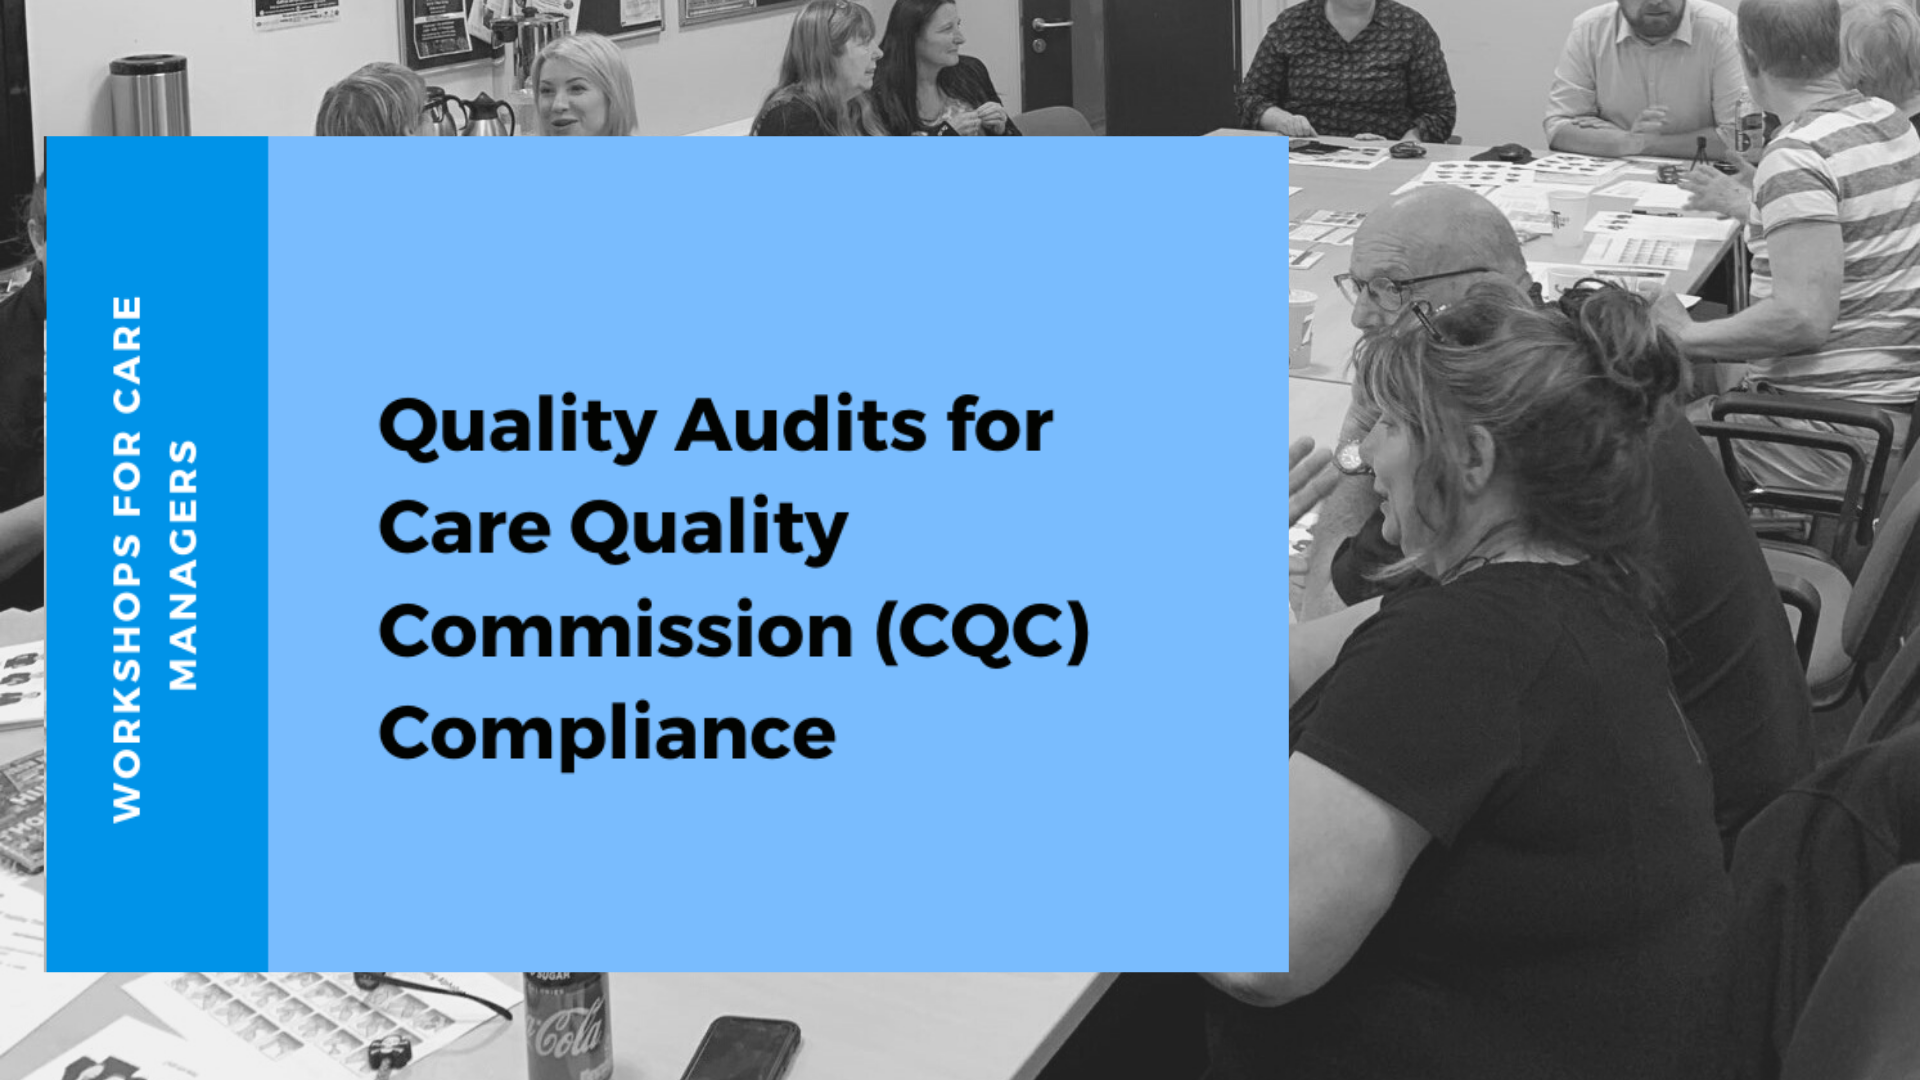 Quality Audits for Care Quality Commission (CQC) for Managers